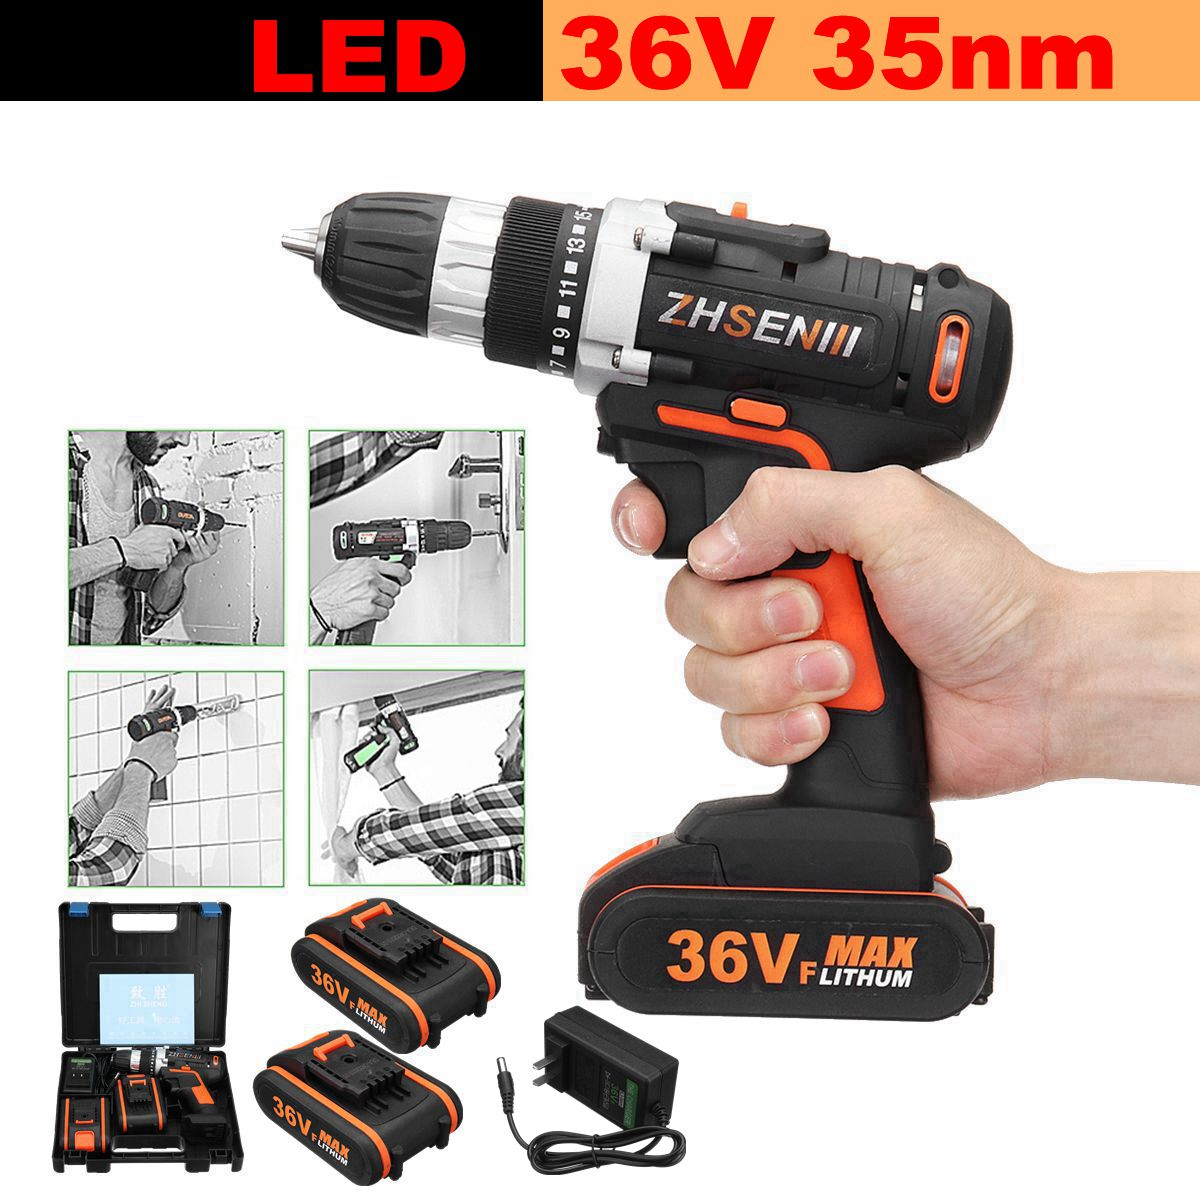 Max 36V Electric Screwdriver Lithium Battery Rechargeable Parafusadeira Furadeira Multi function Cordless Drill Power Tools